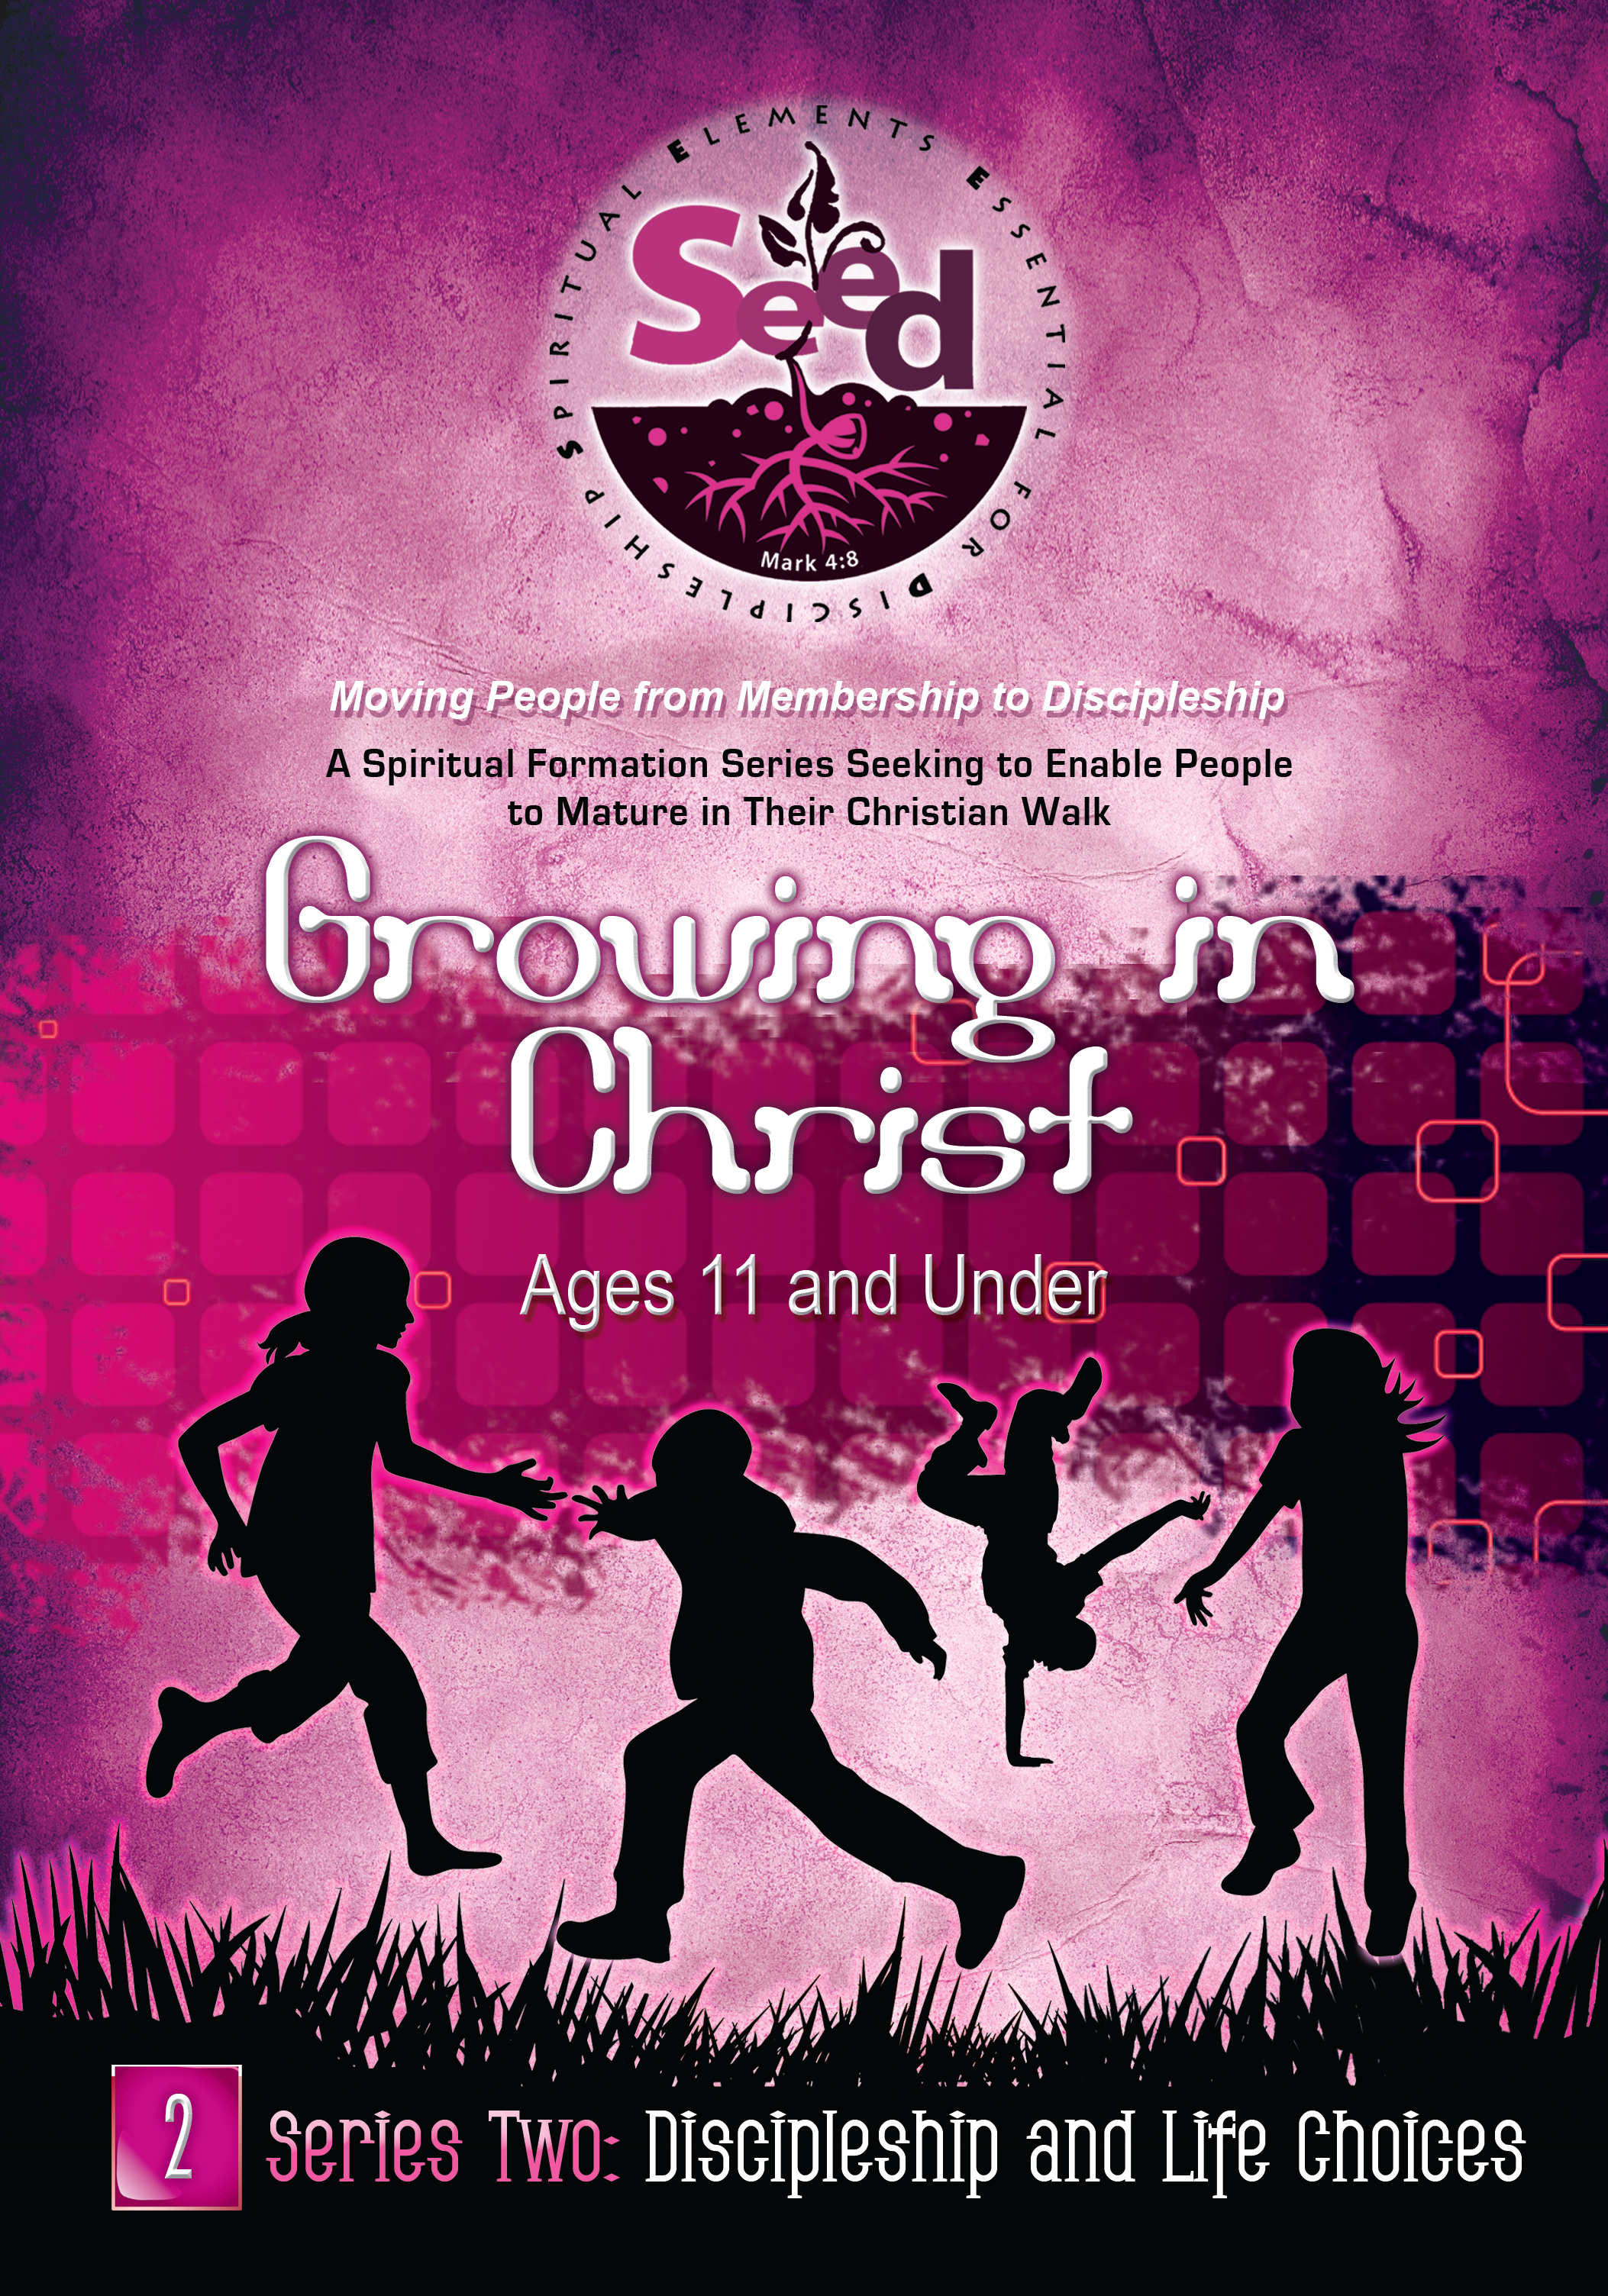 seed growing in christ ages 11 and under series 2 discipleship